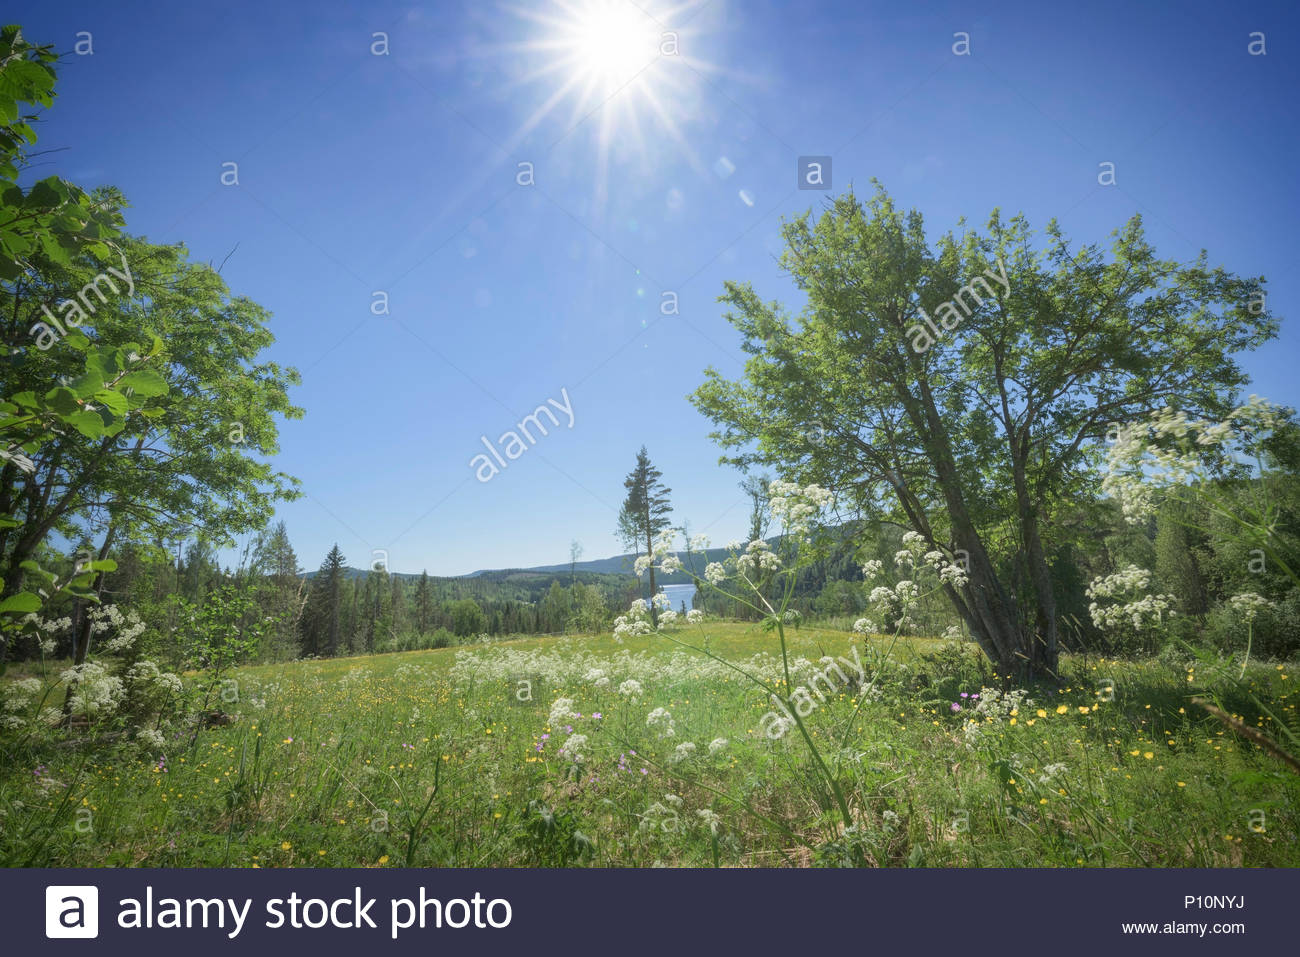 river, field and trees in a mountain landscape - Stock Image